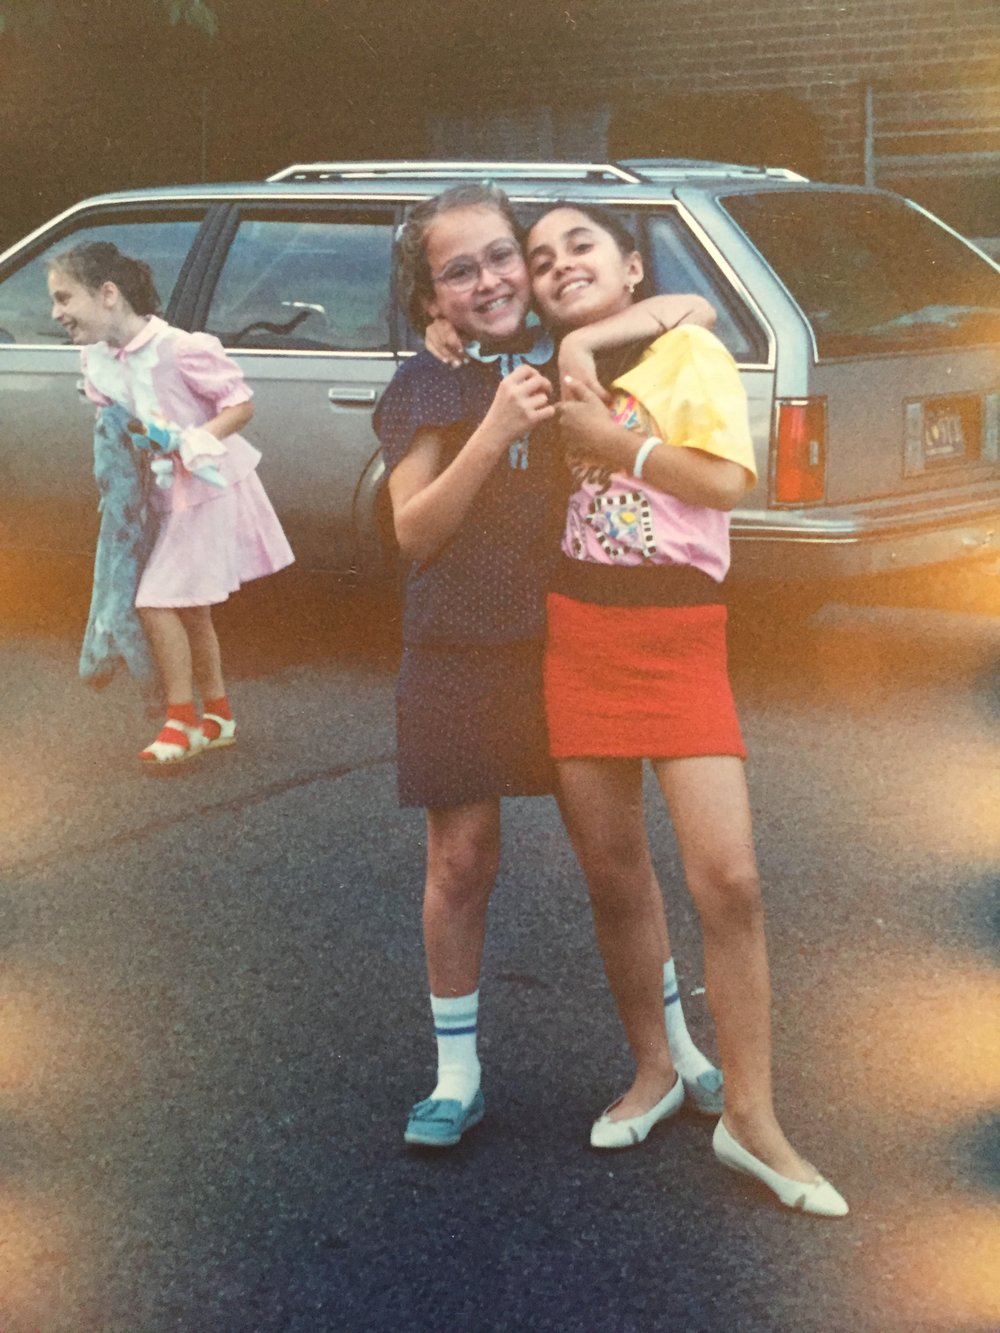 First year in America, new friend; a parking lot full of Russian immigrant kids - 1991